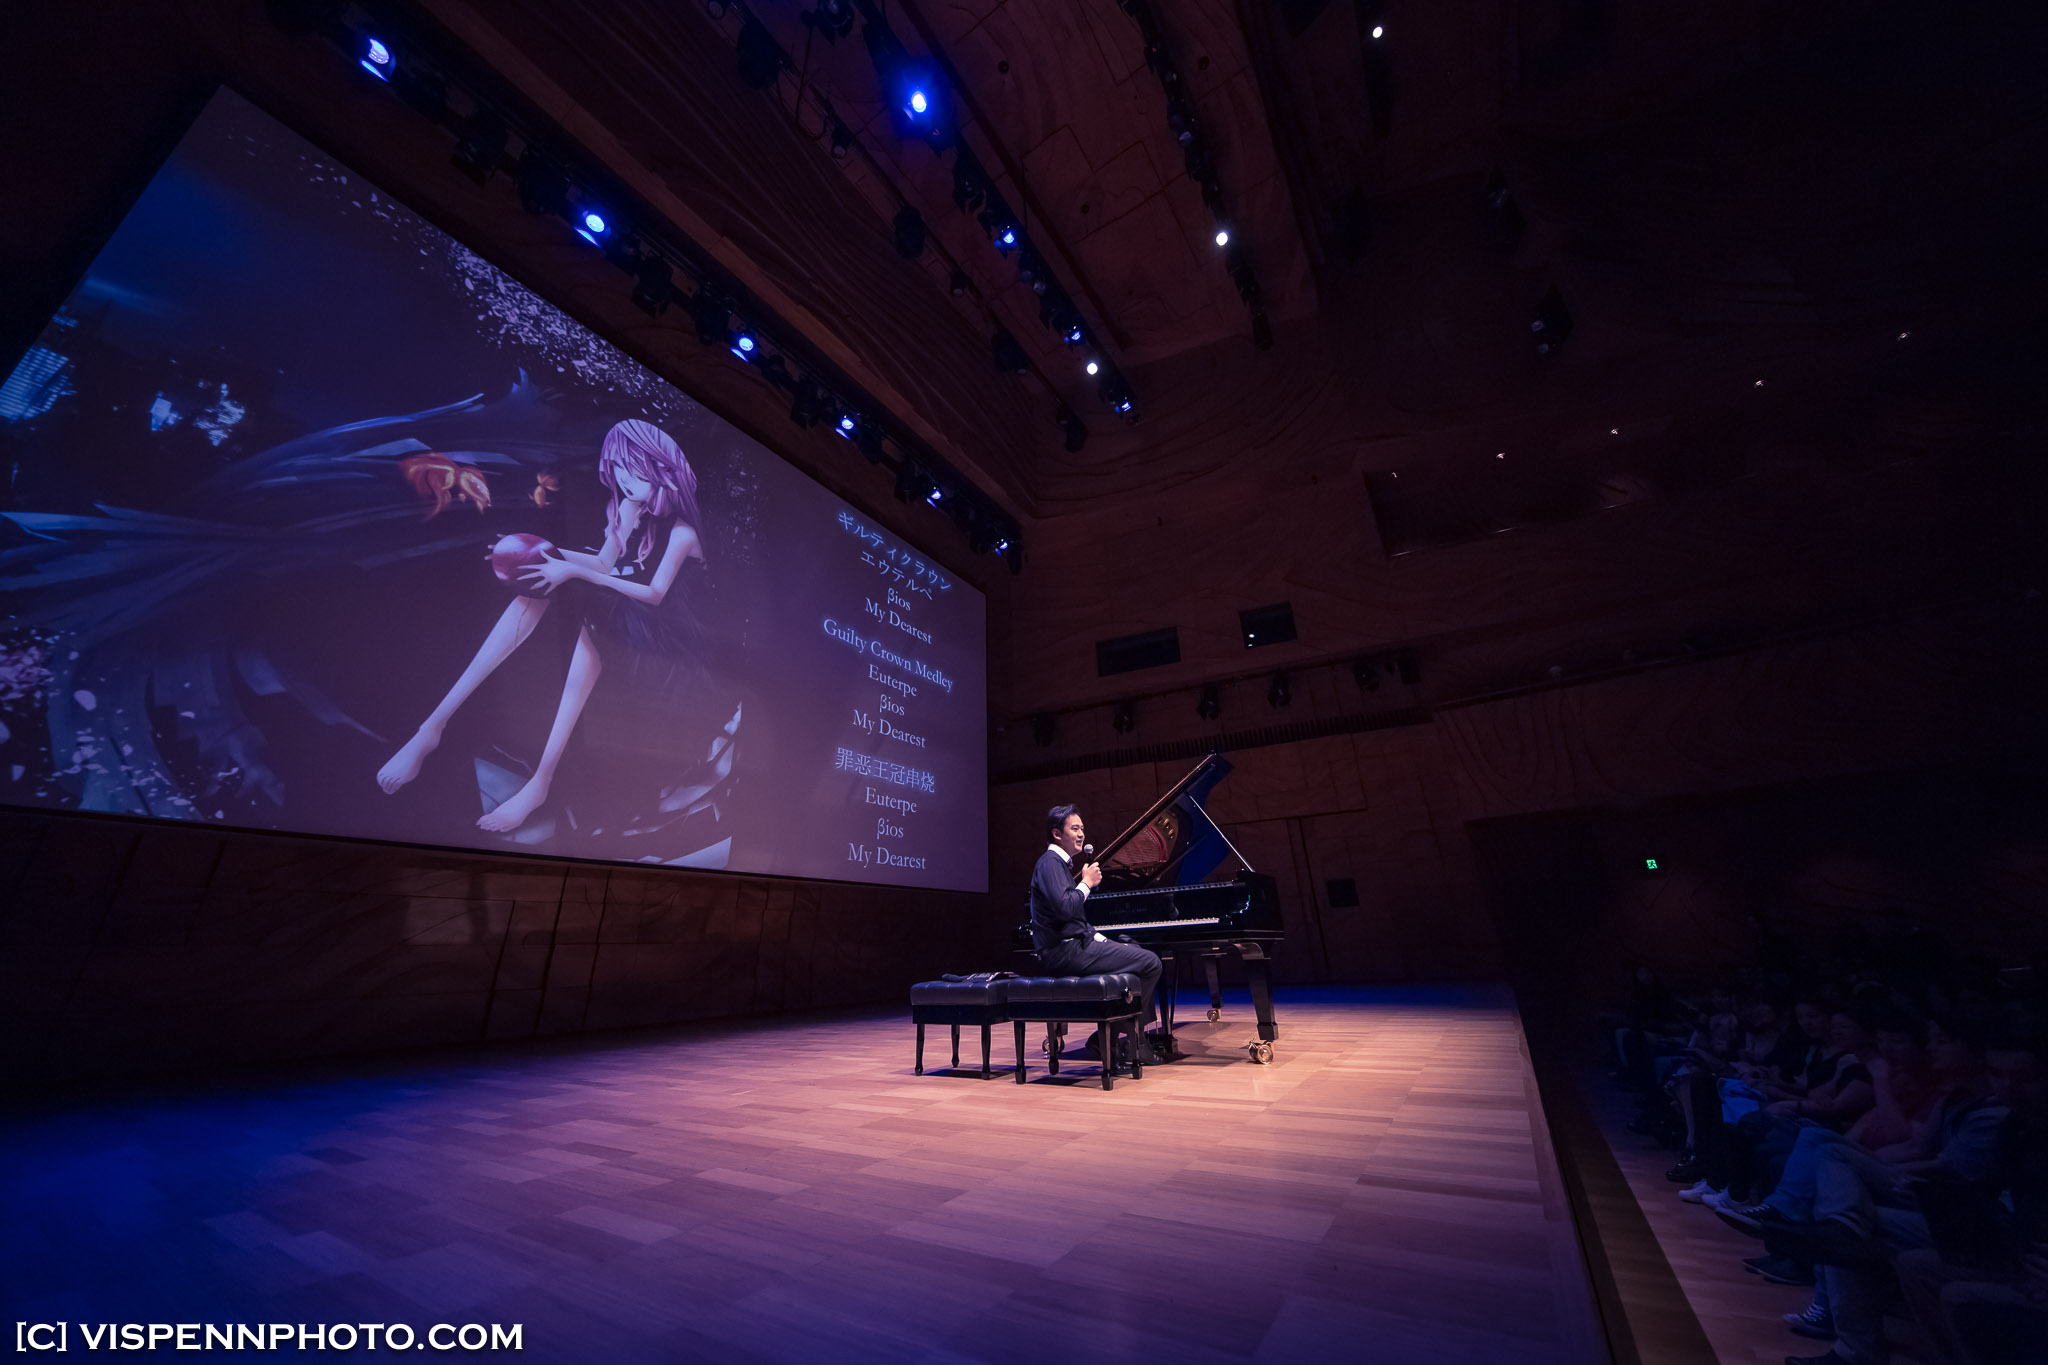 Melbourne CONCERTS Photography 墨尔本 演唱会 照片 摄影师 VISPENN VISPENN AnimenzP1 1591